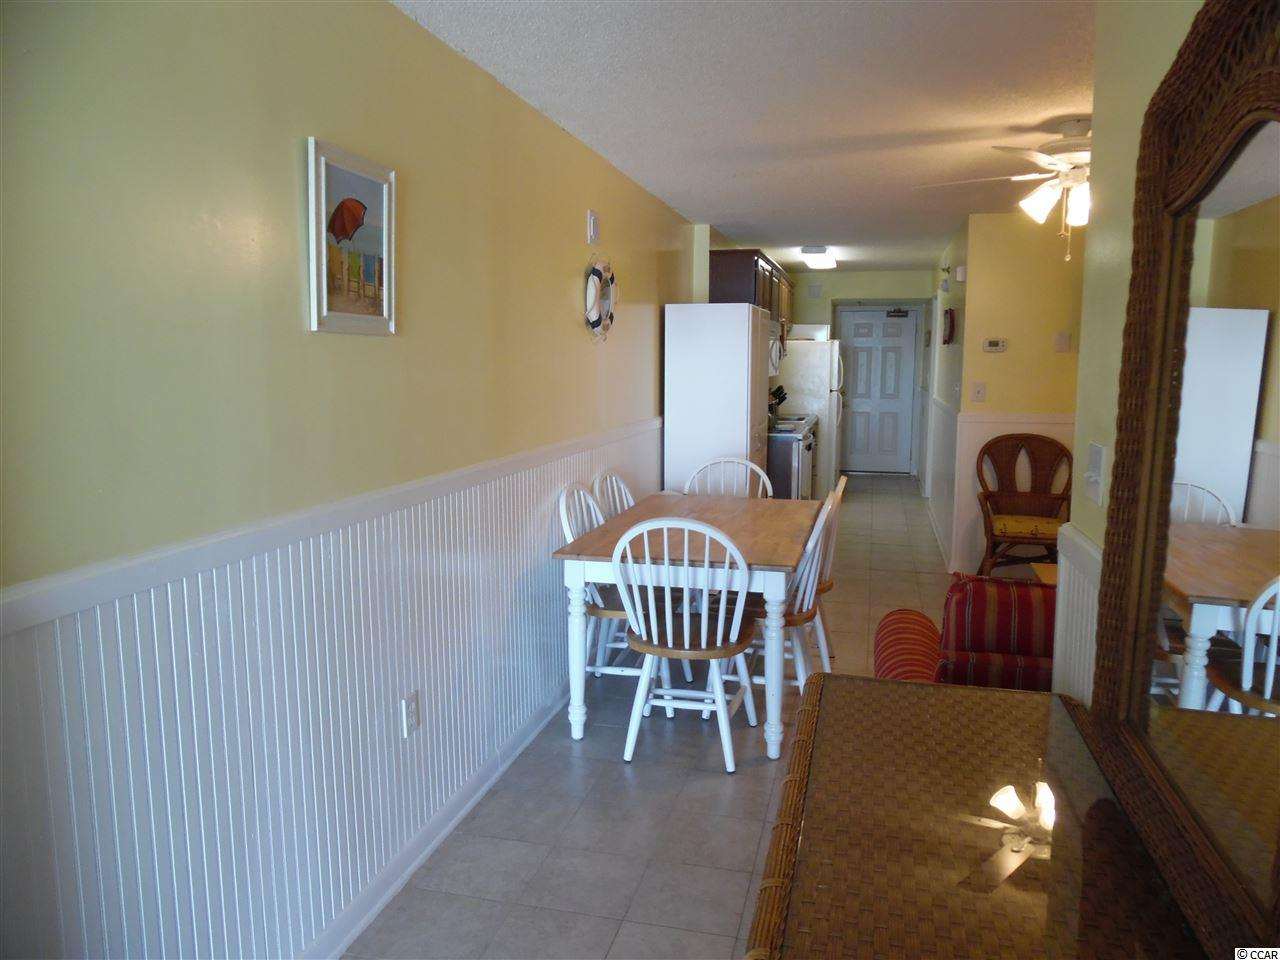 Condo Sold At San A Bel In North Myrtle Beach South Carolina Unit Listing Mls Number 1610214